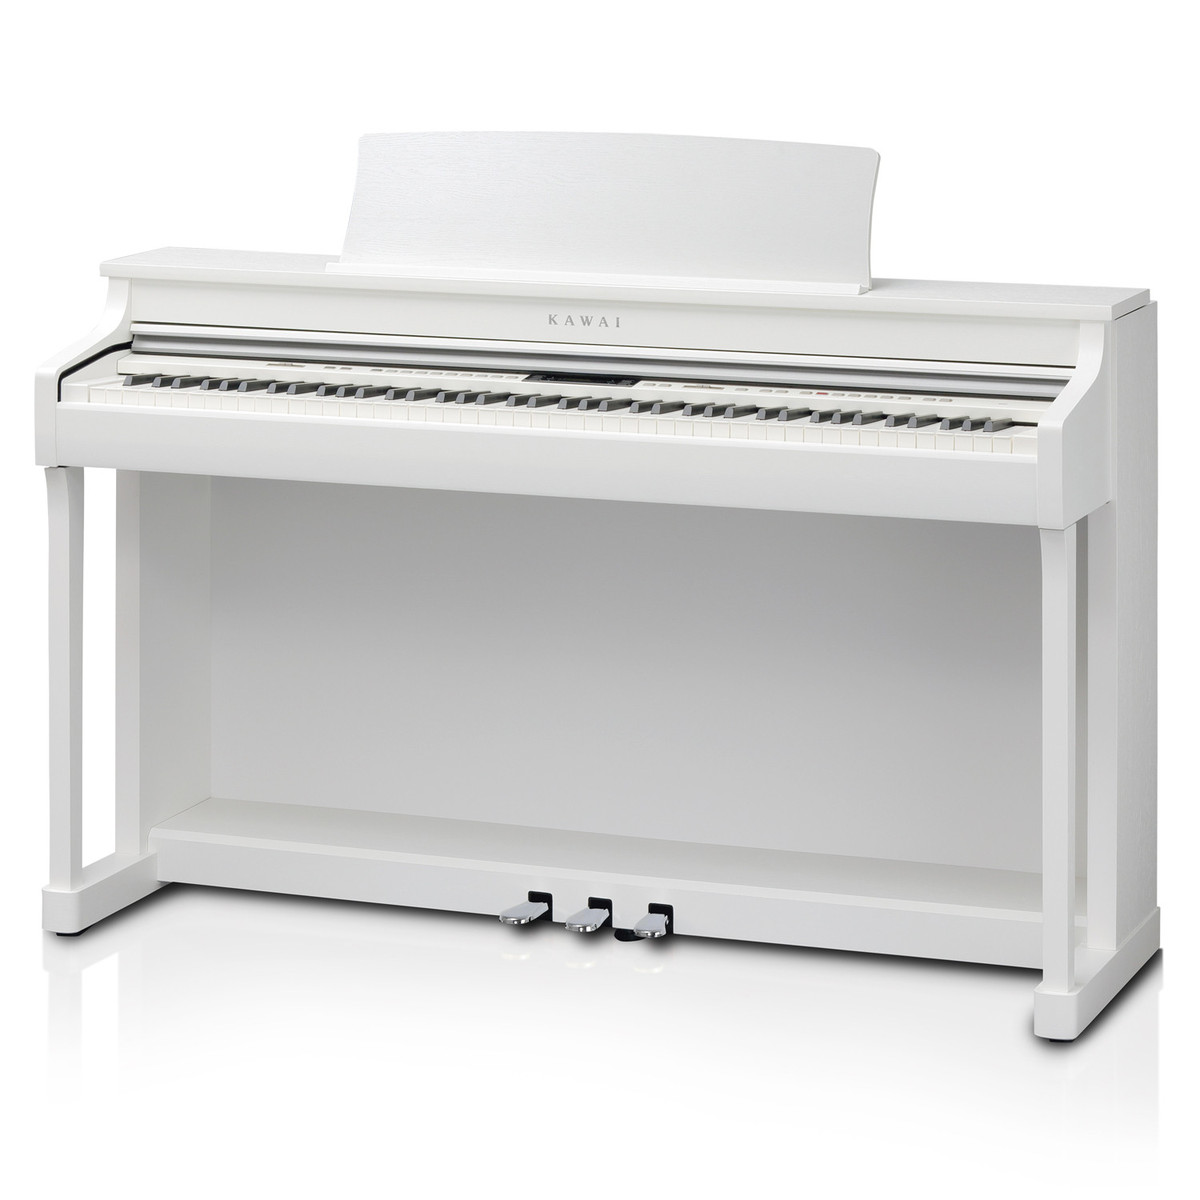 kawai cn35 digital piano premium satin white at gear4music. Black Bedroom Furniture Sets. Home Design Ideas